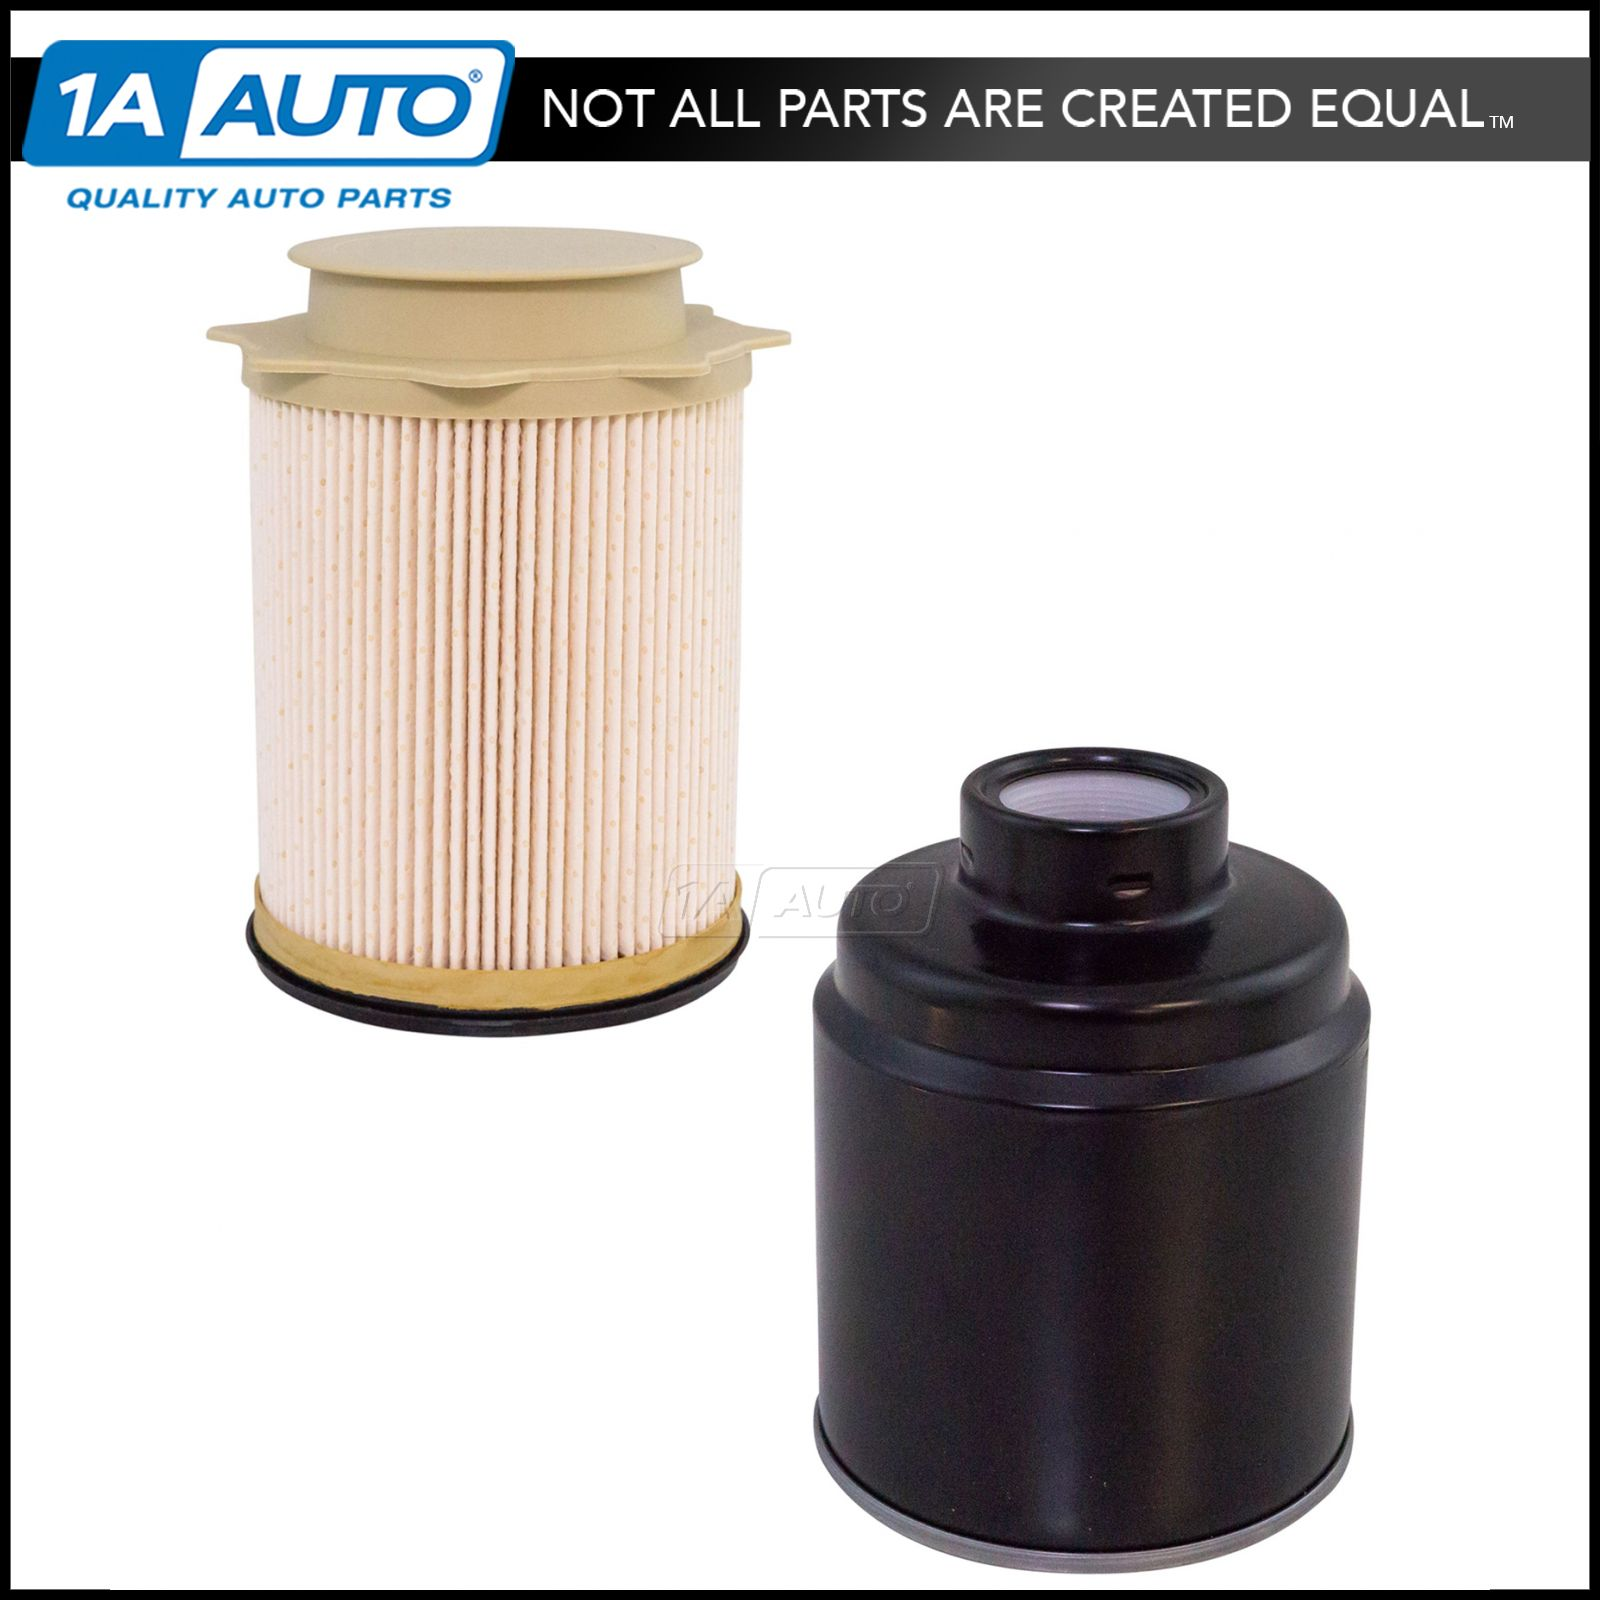 hight resolution of details about engine fuel filter water separator kit for ram 2500 3500 6 7 cummins diesel